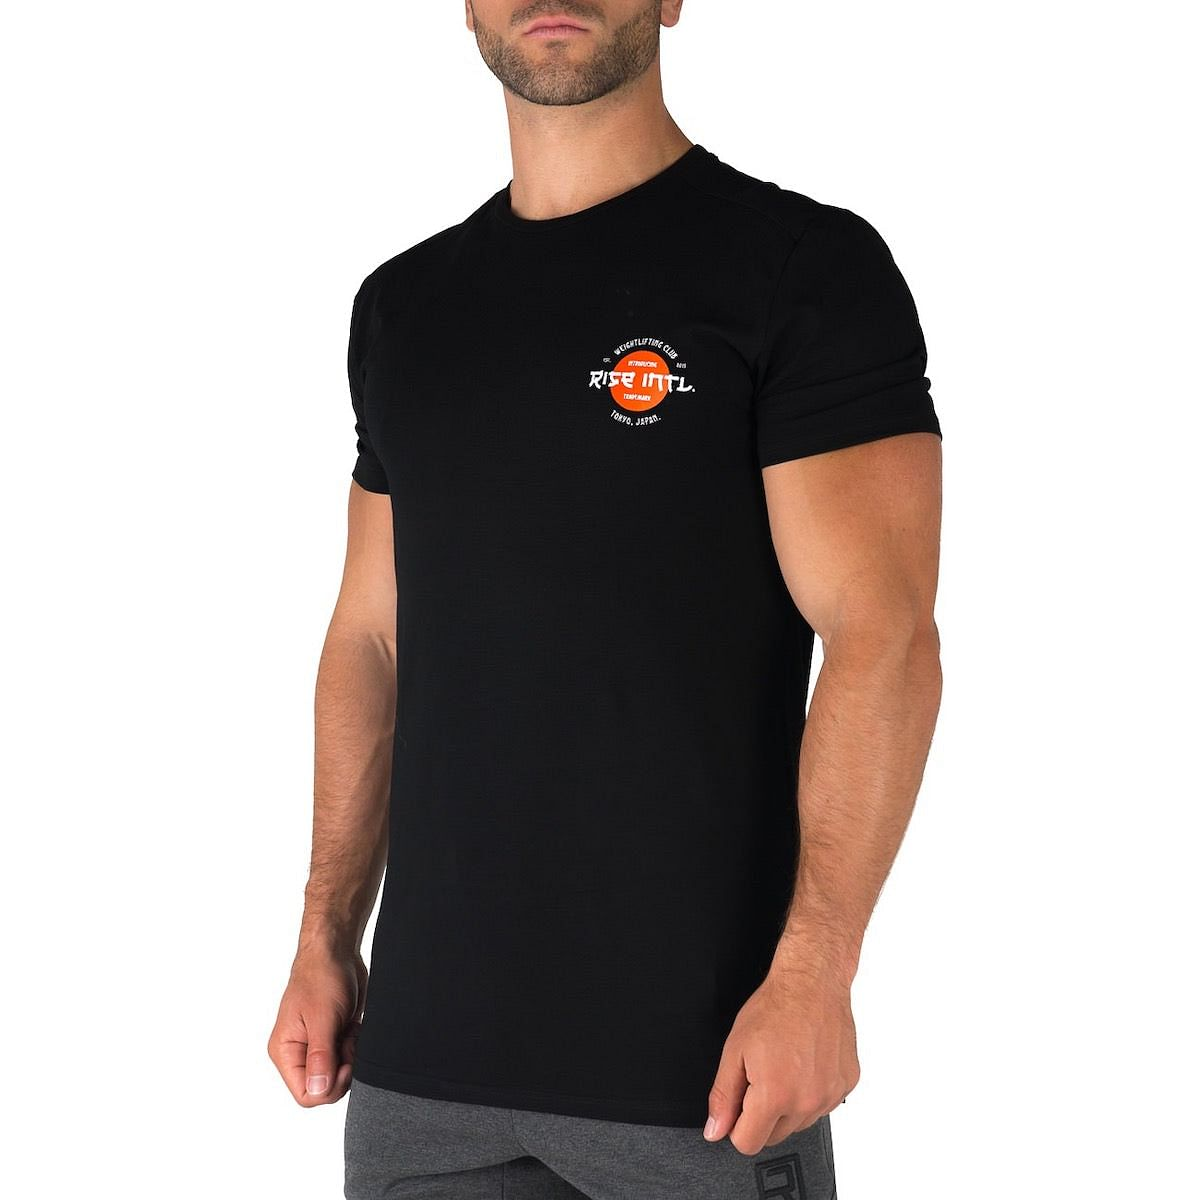 Japan Weightlifting Club Shirt - Black